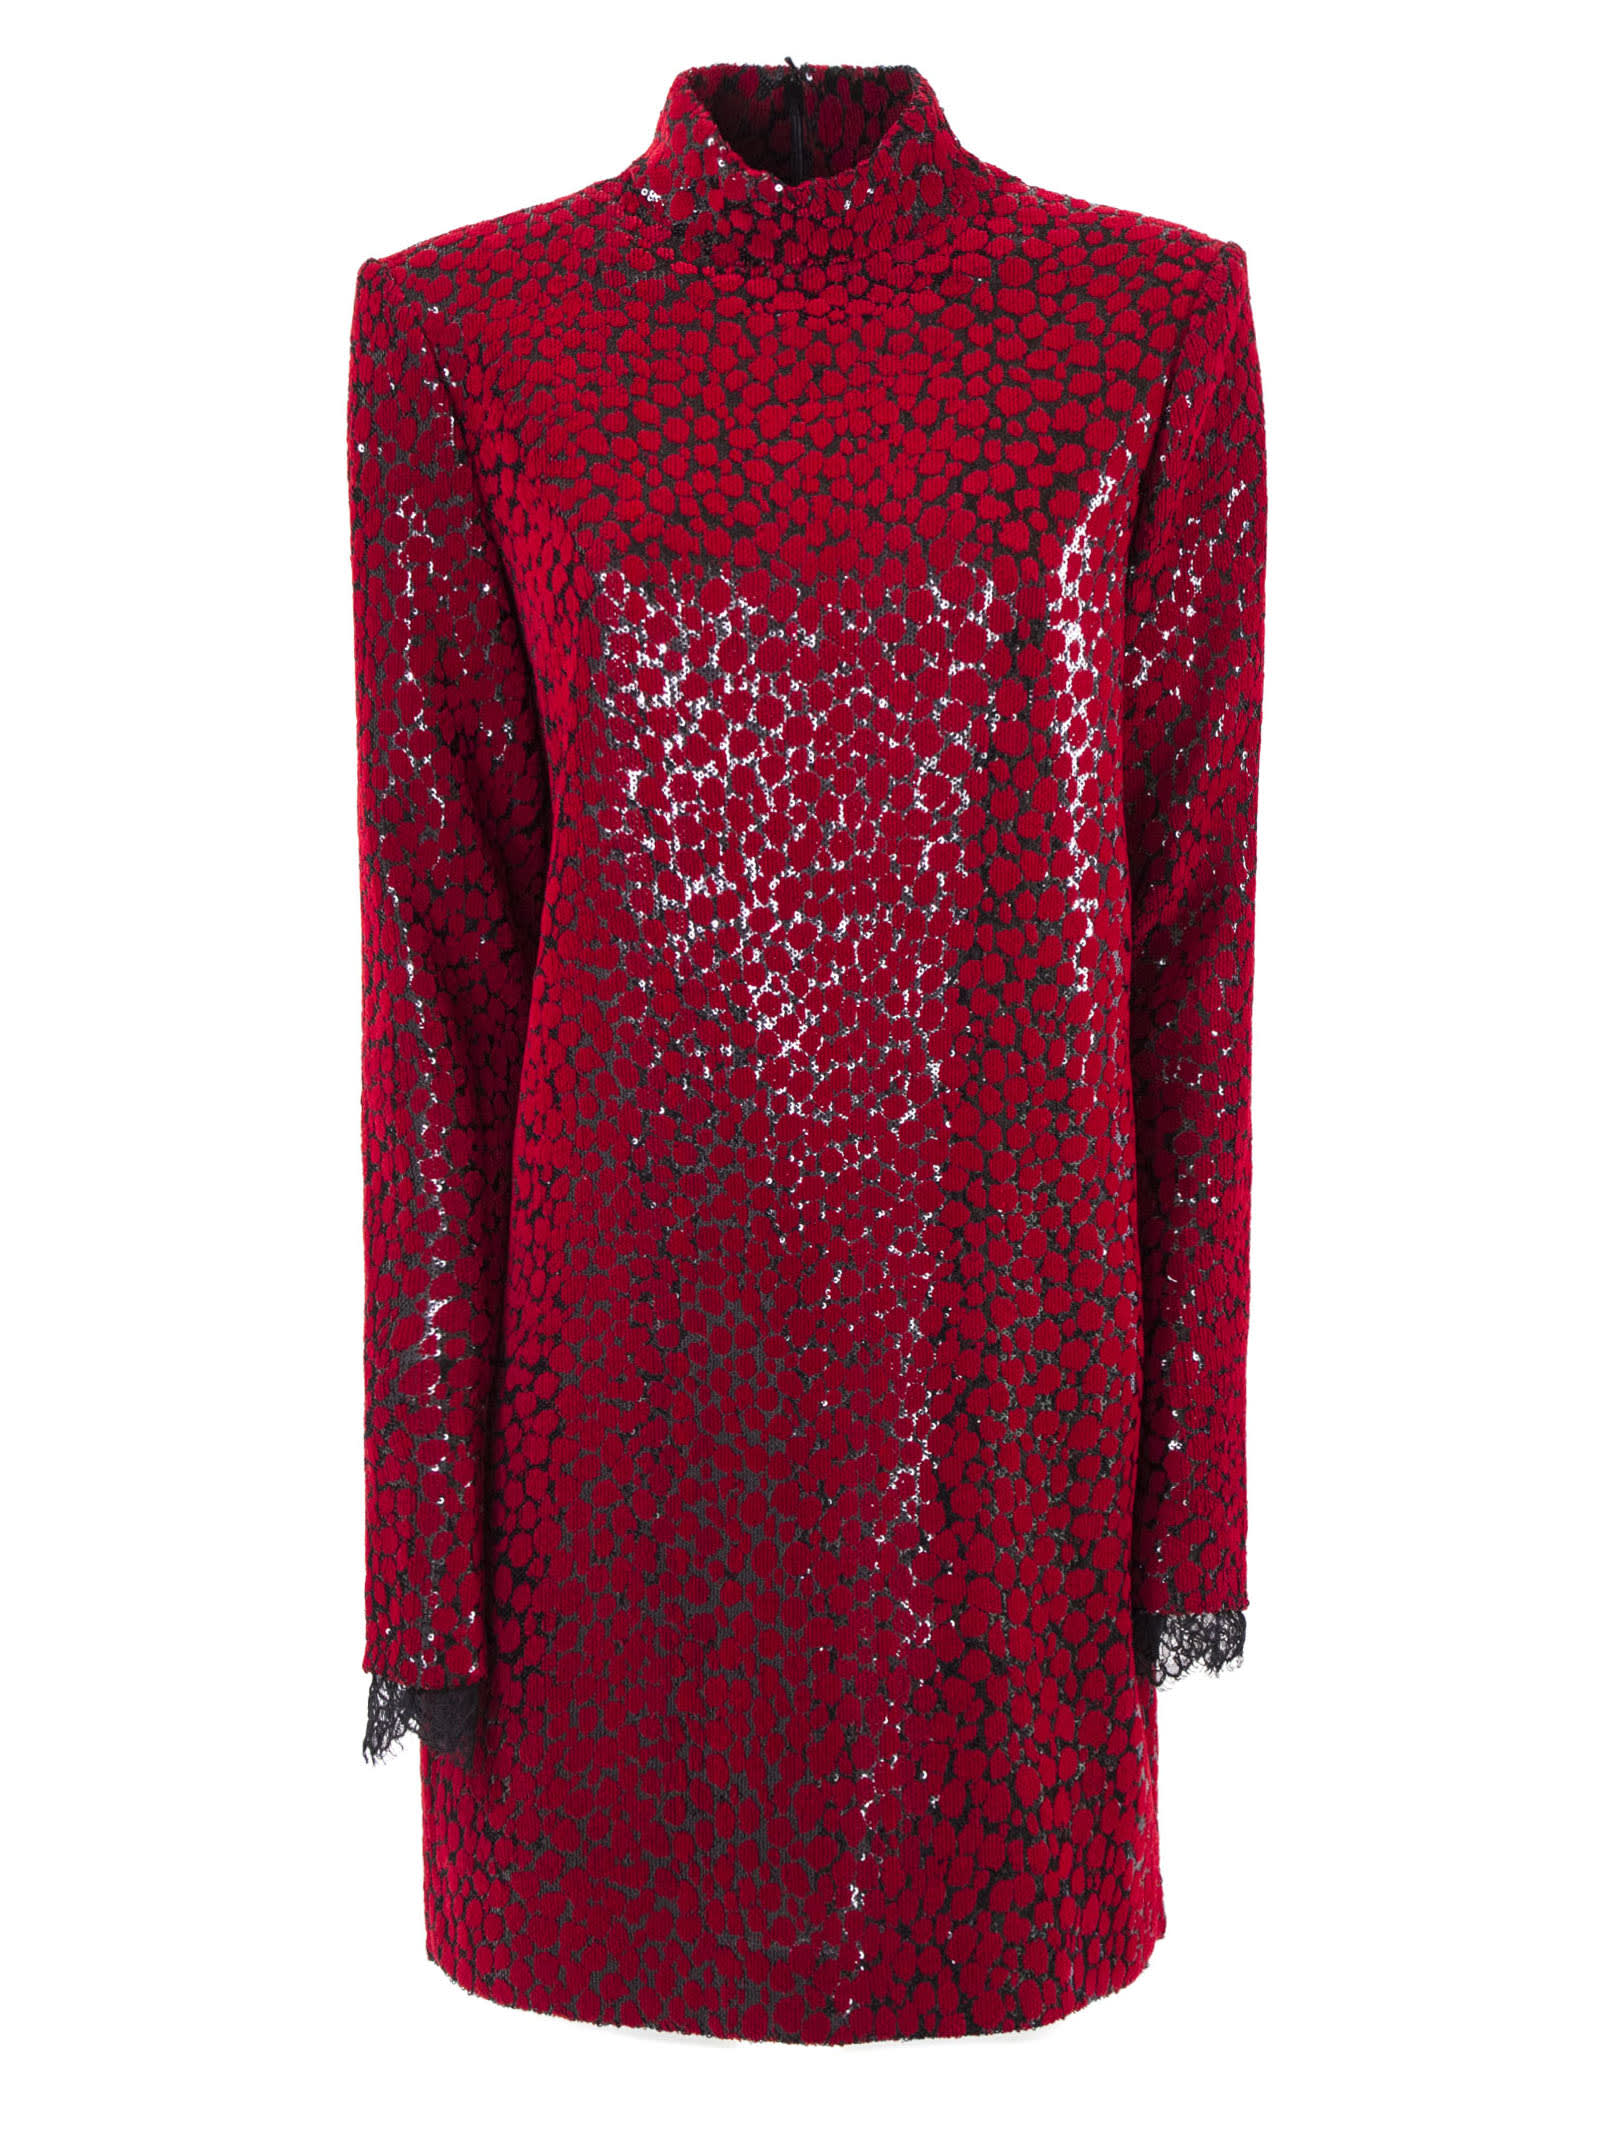 Philosophy di Lorenzo Serafini Red Ocelot Print Fabric Dress